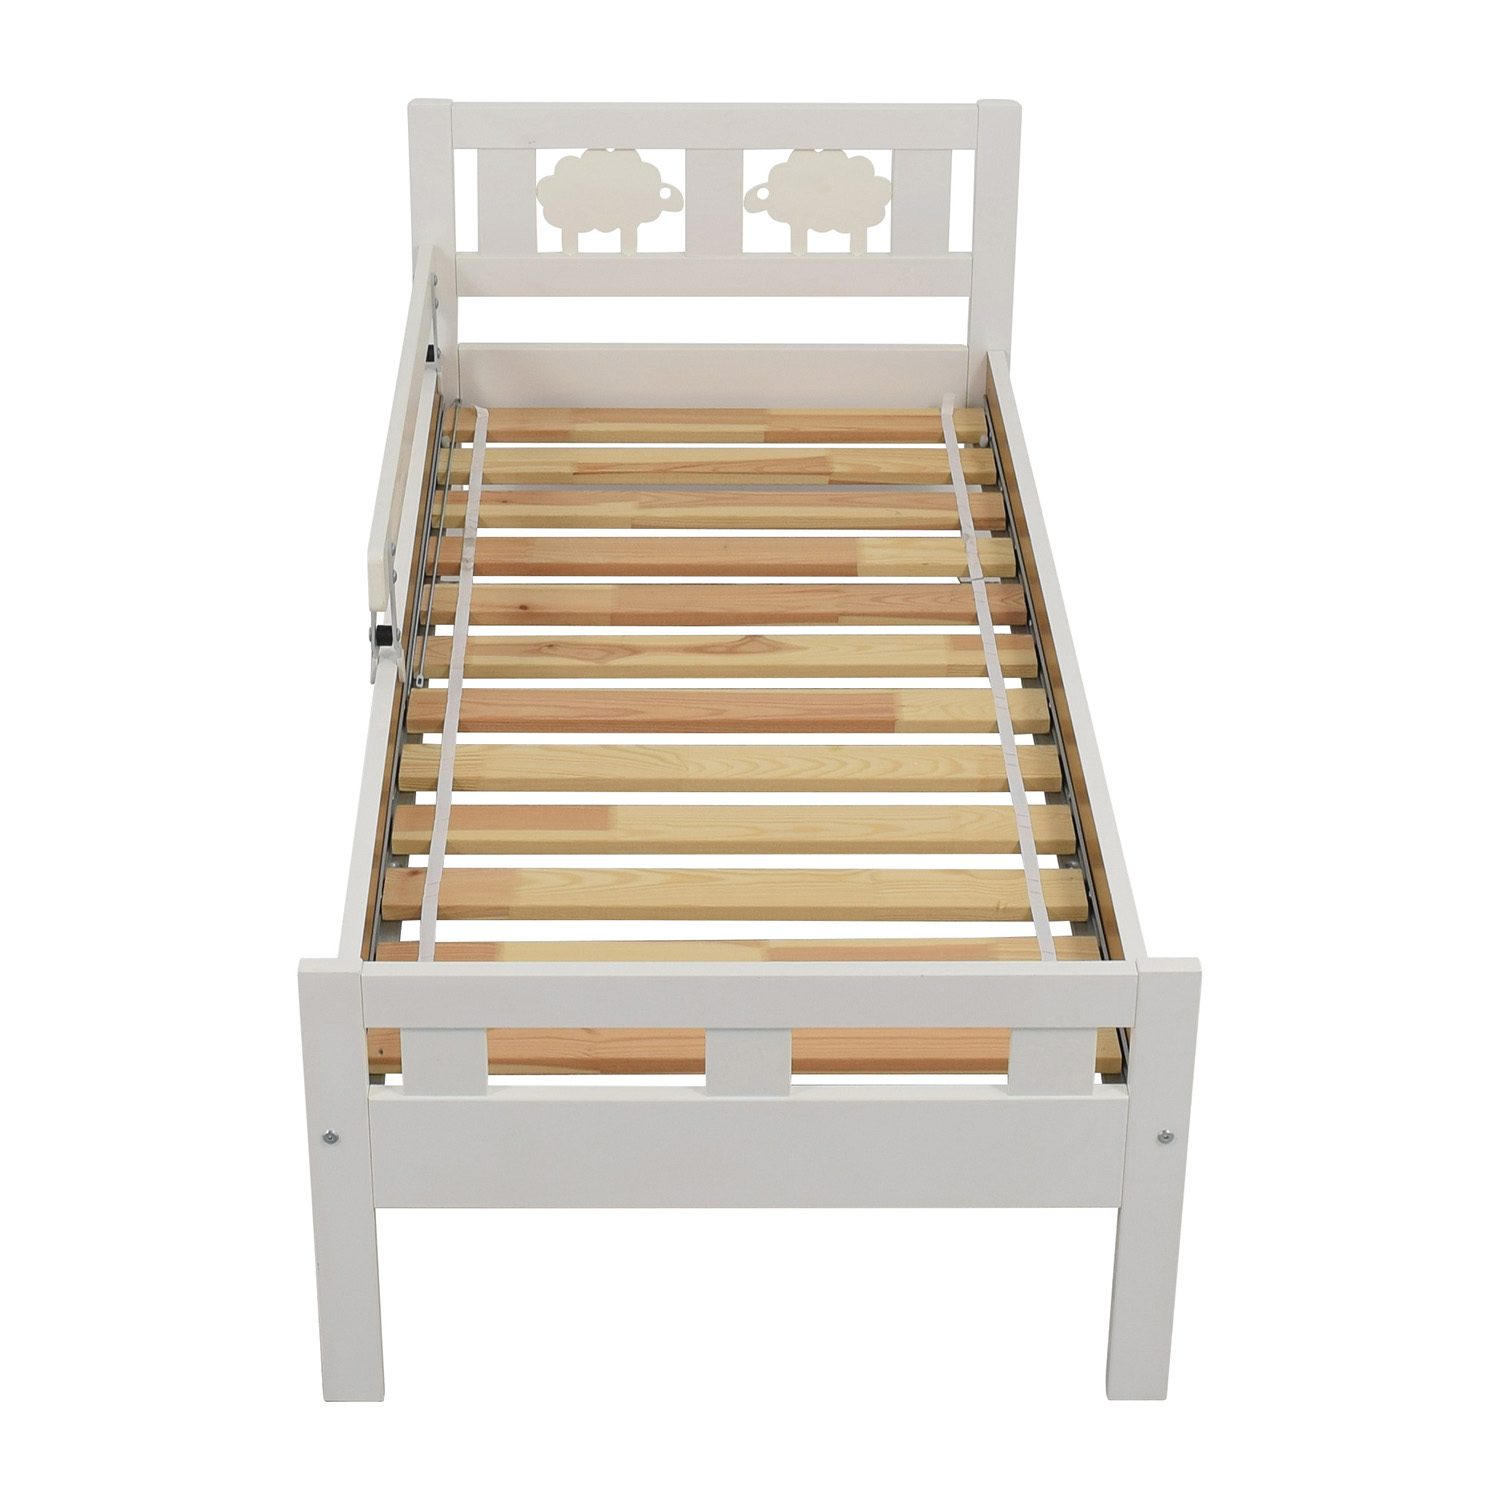 ikea critter toddler bed sale - Used Bed Frames